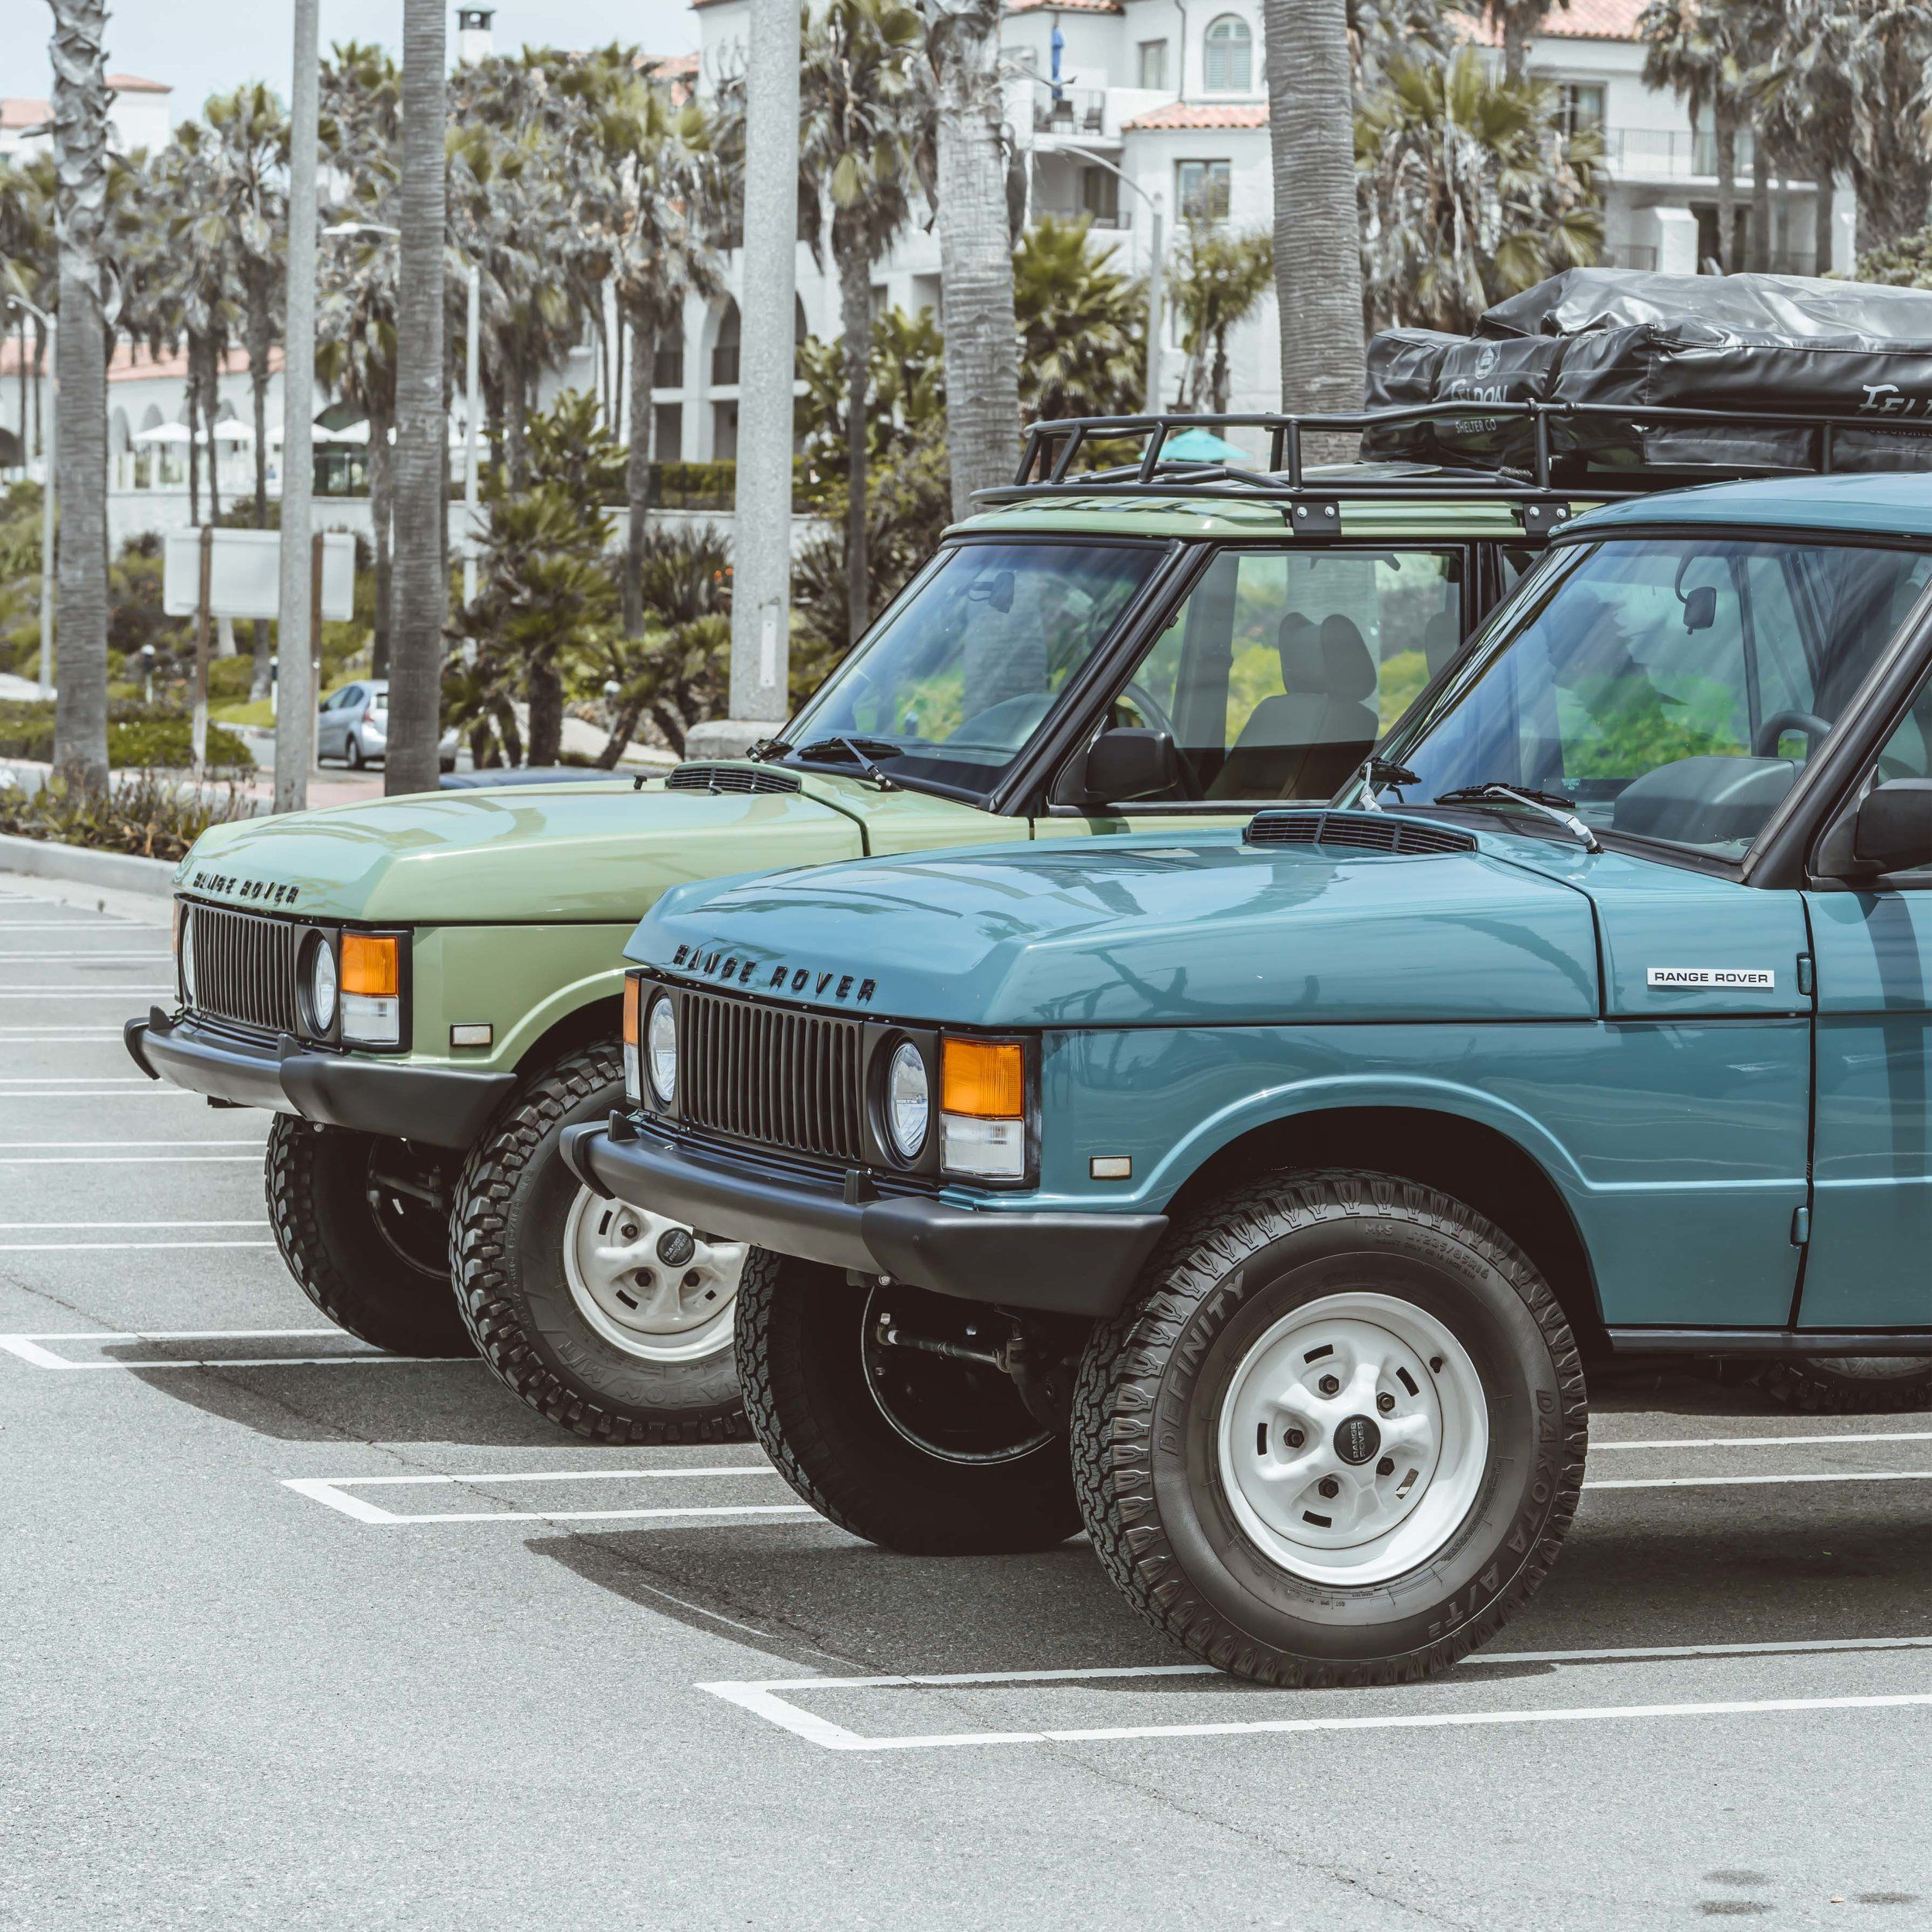 Pin By David Welham On Landie Range Rover Classic Range Rover Car Colors